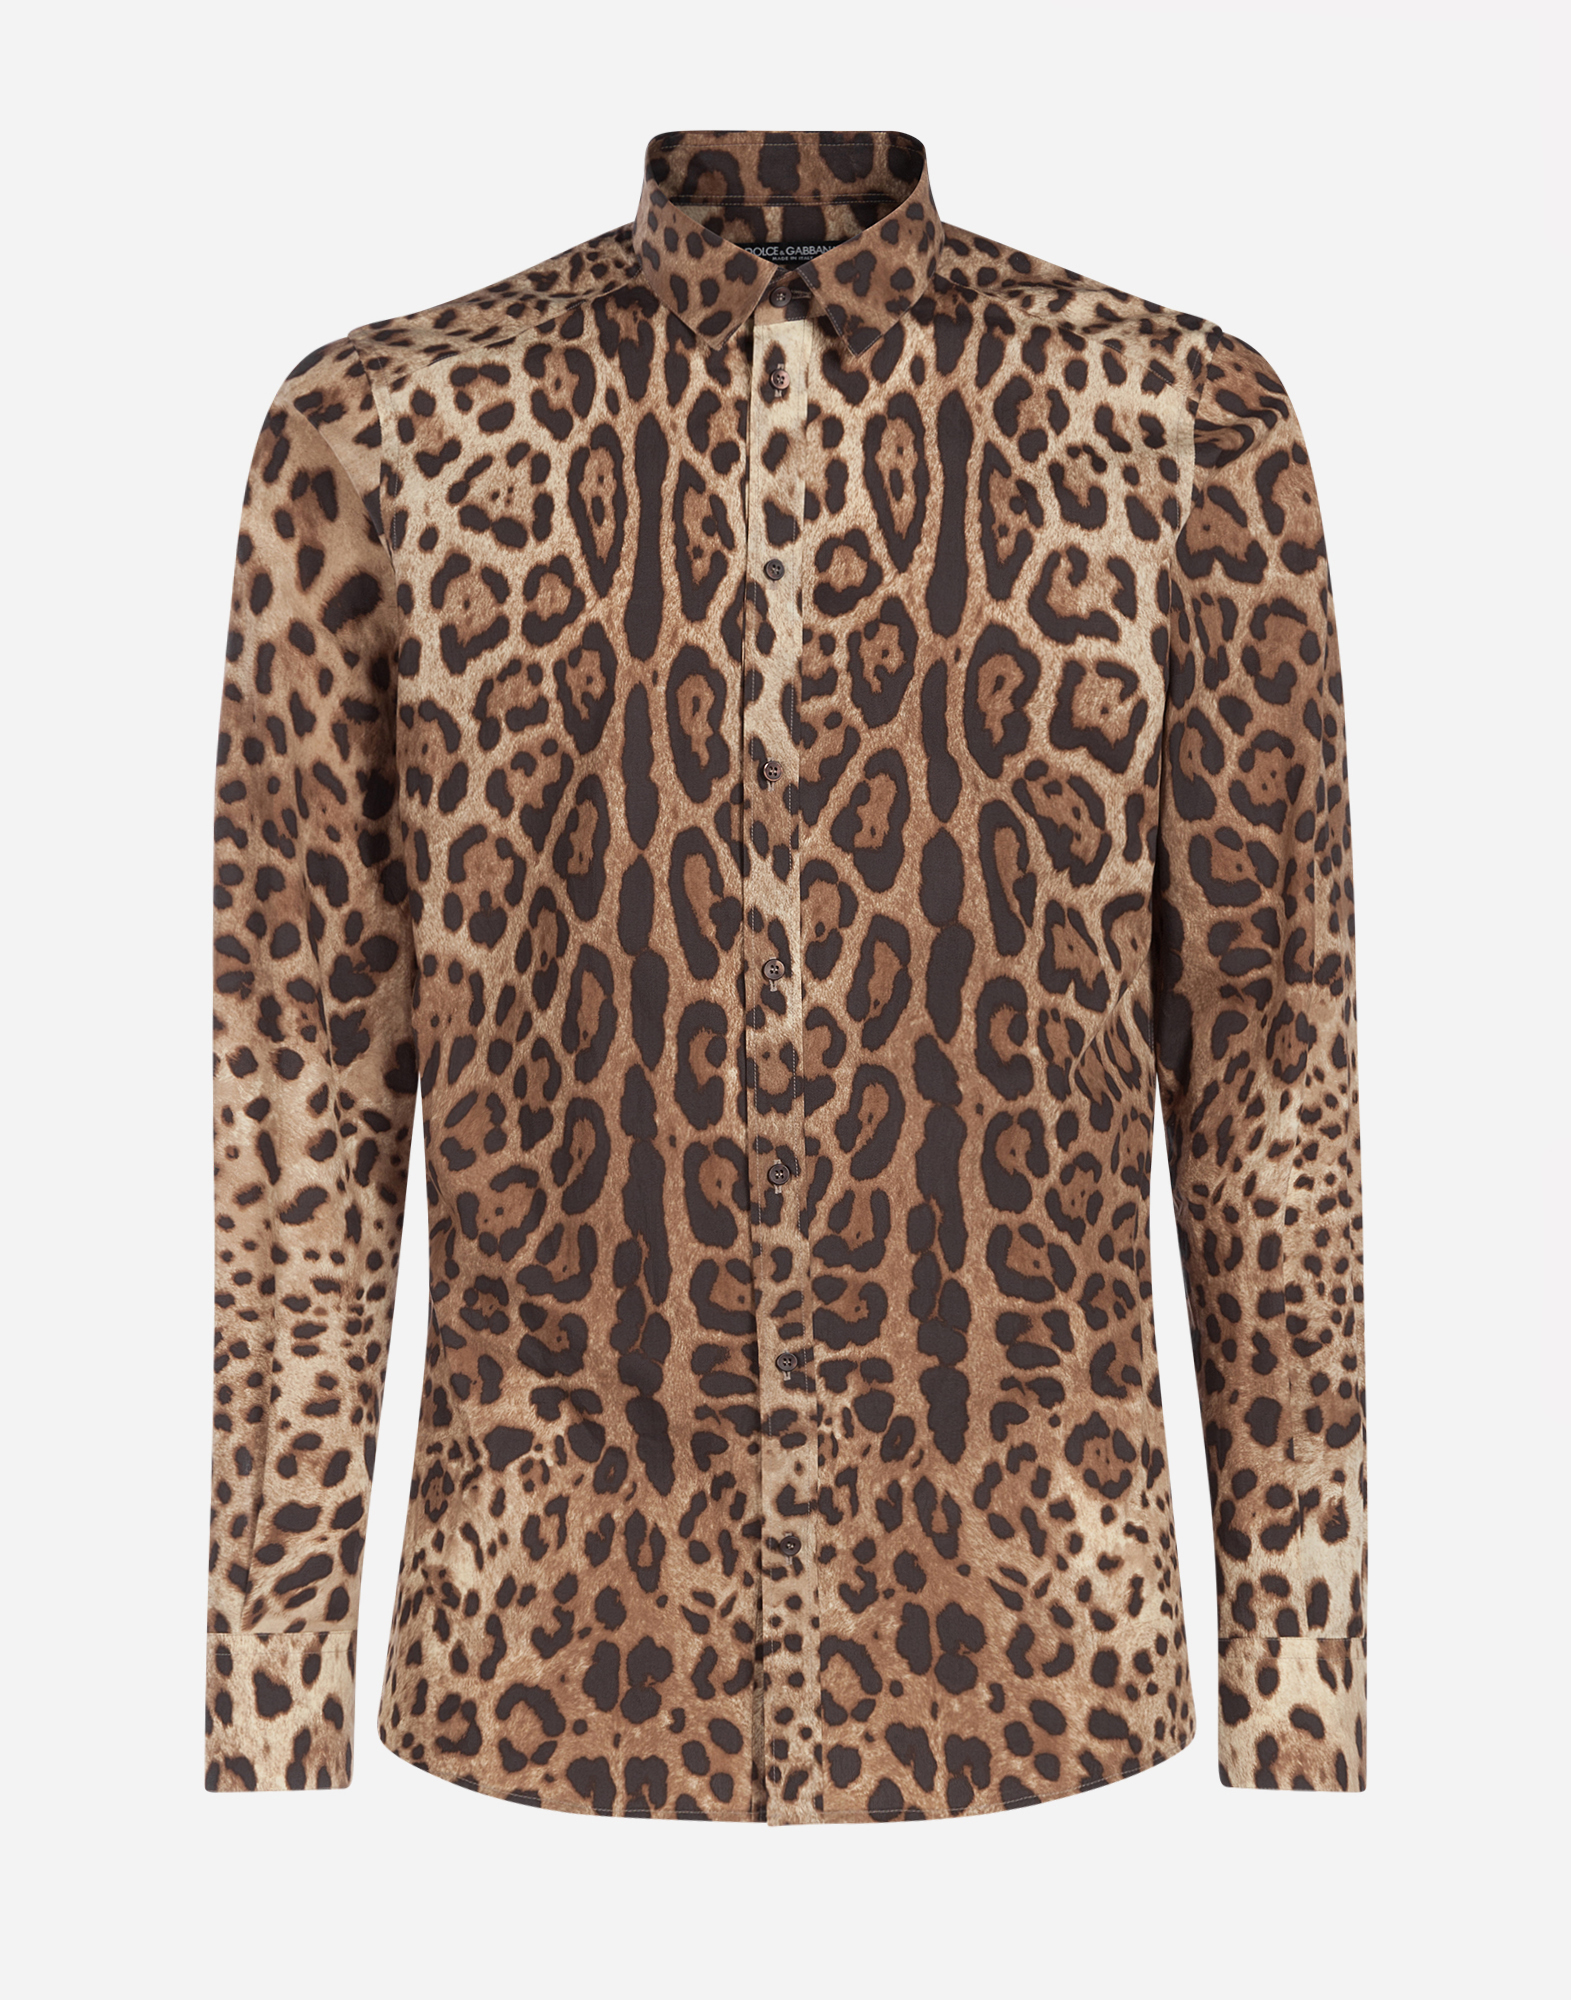 Dolce&Gabbana CAPRI FIT SHIRT IN LEOPARD PRINT COTTON